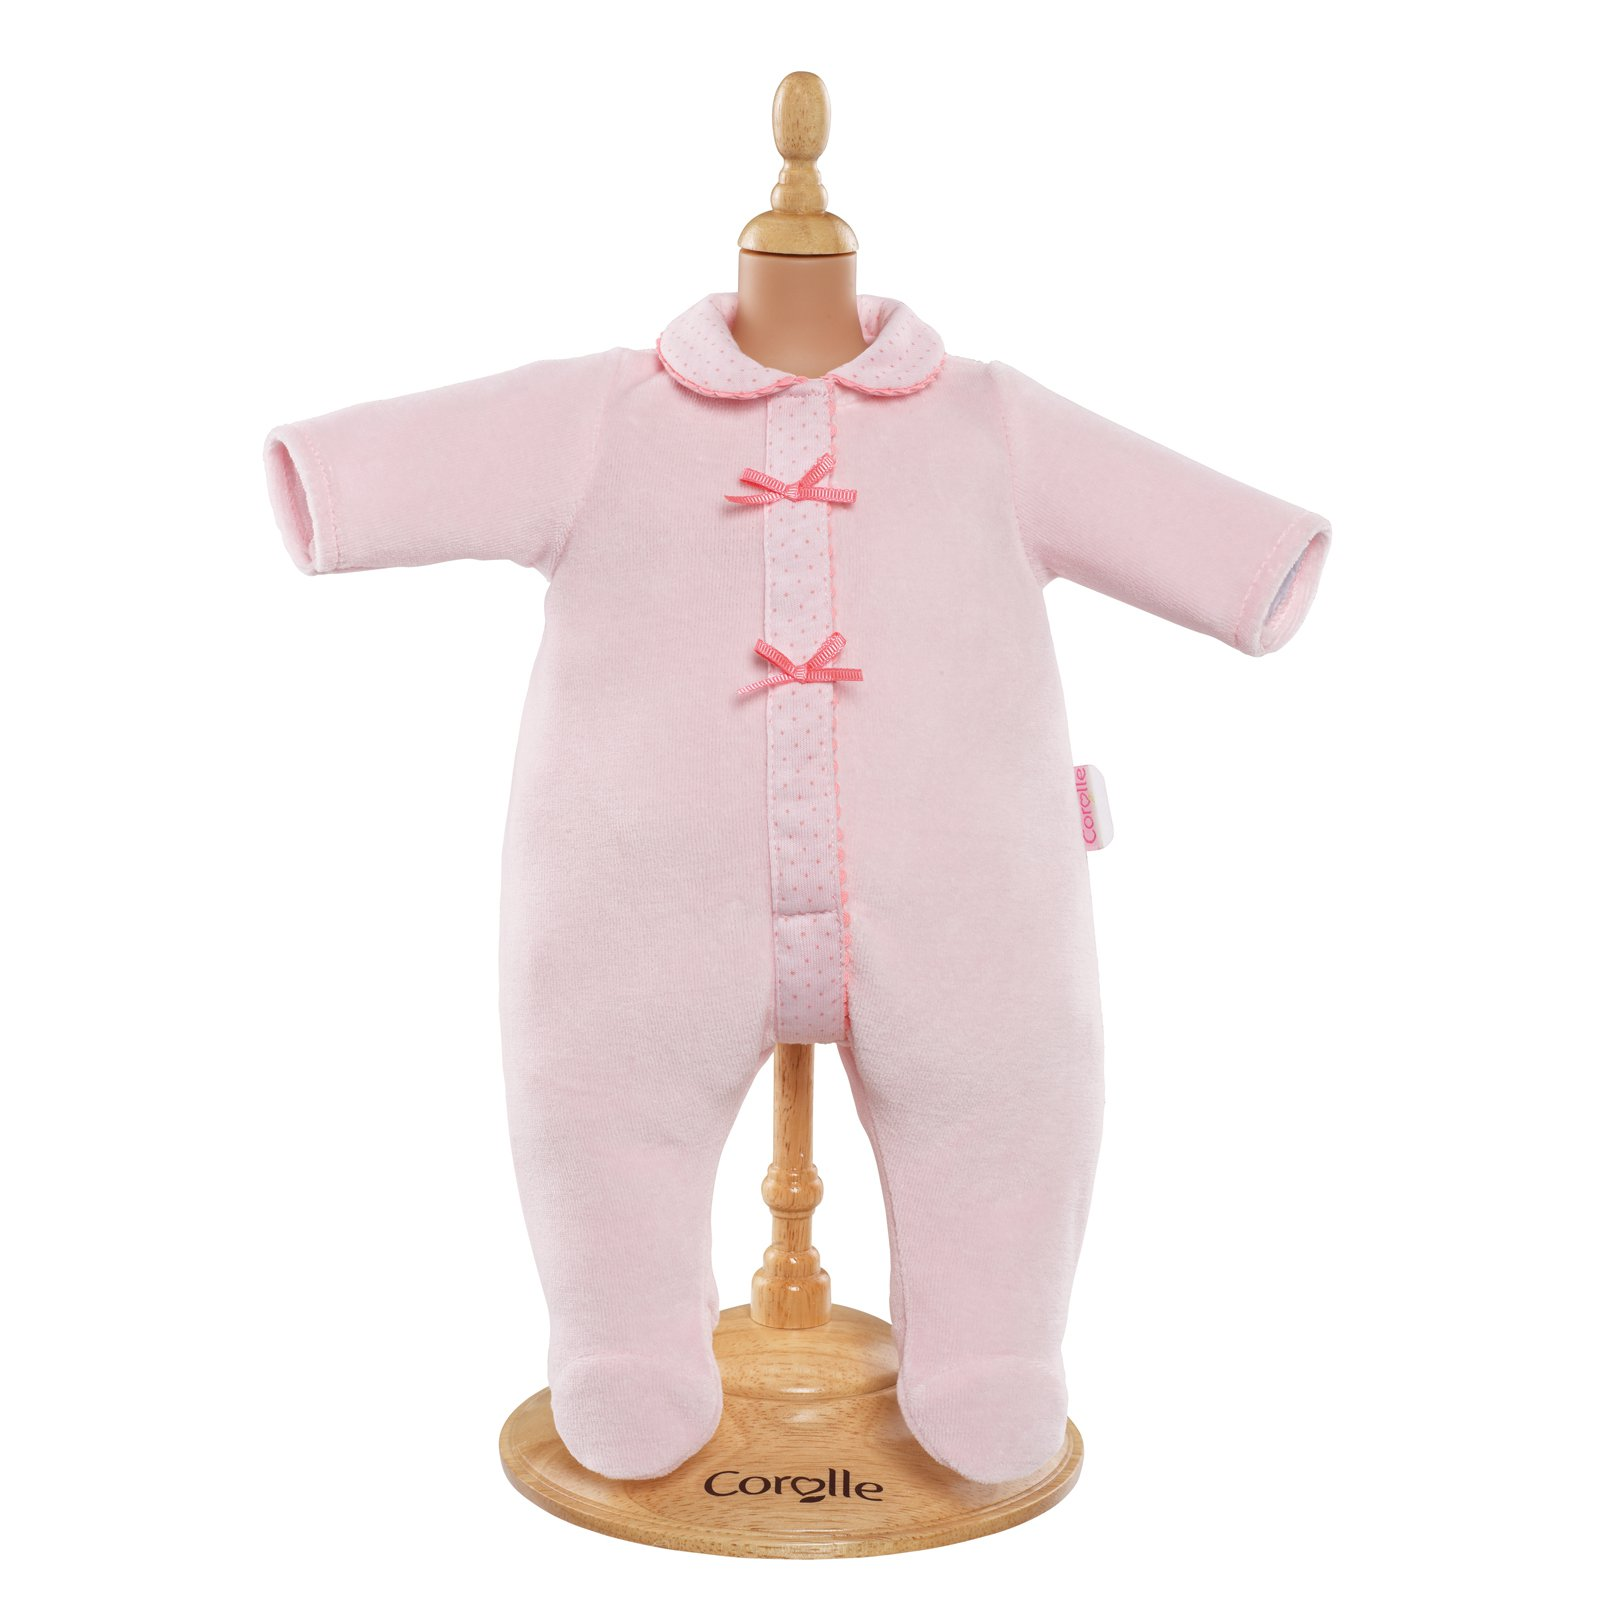 Corolle Mon Classiques Bebe 17 in. Pink Pajamas Doll Ensemble by Corolle